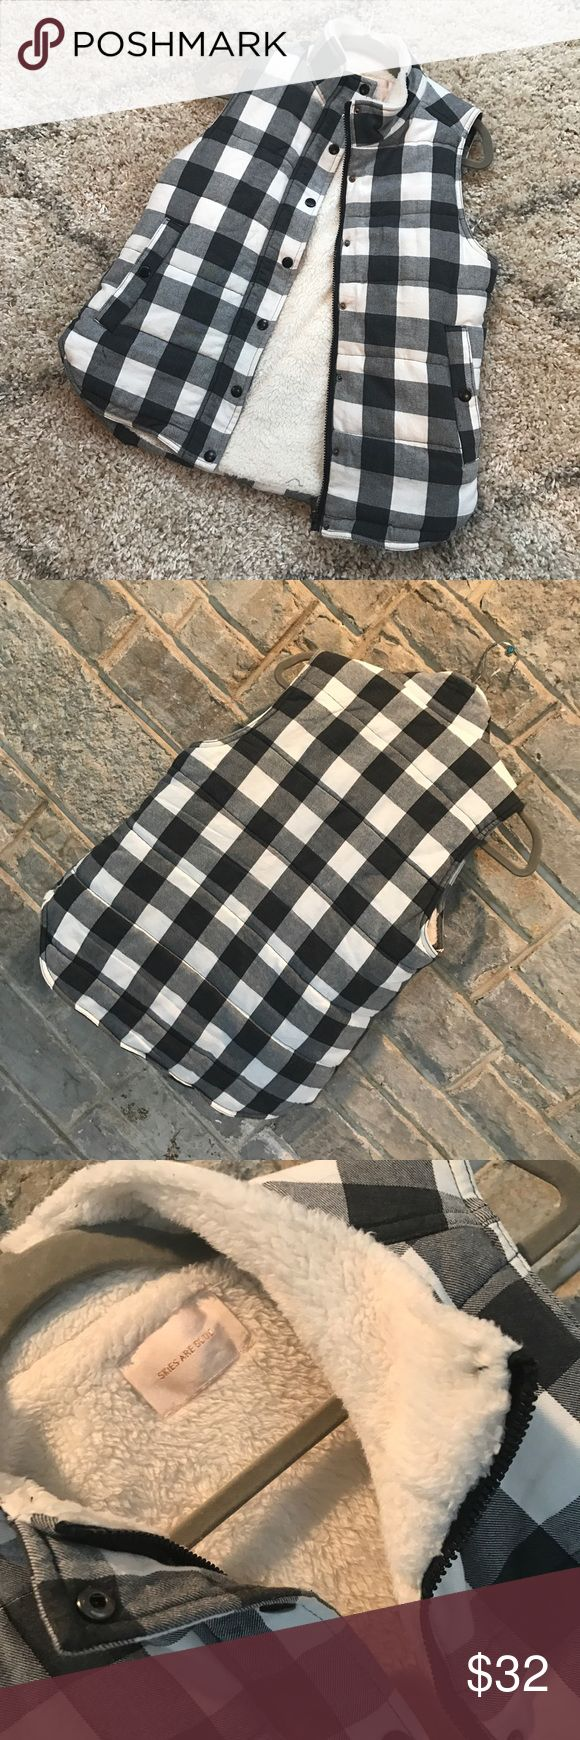 Black and white buffalo check vest. Size large. Black and white buffalo check vest. Size large. Purchased from Evereve this fall. Great condition. Jackets & Coats Vests